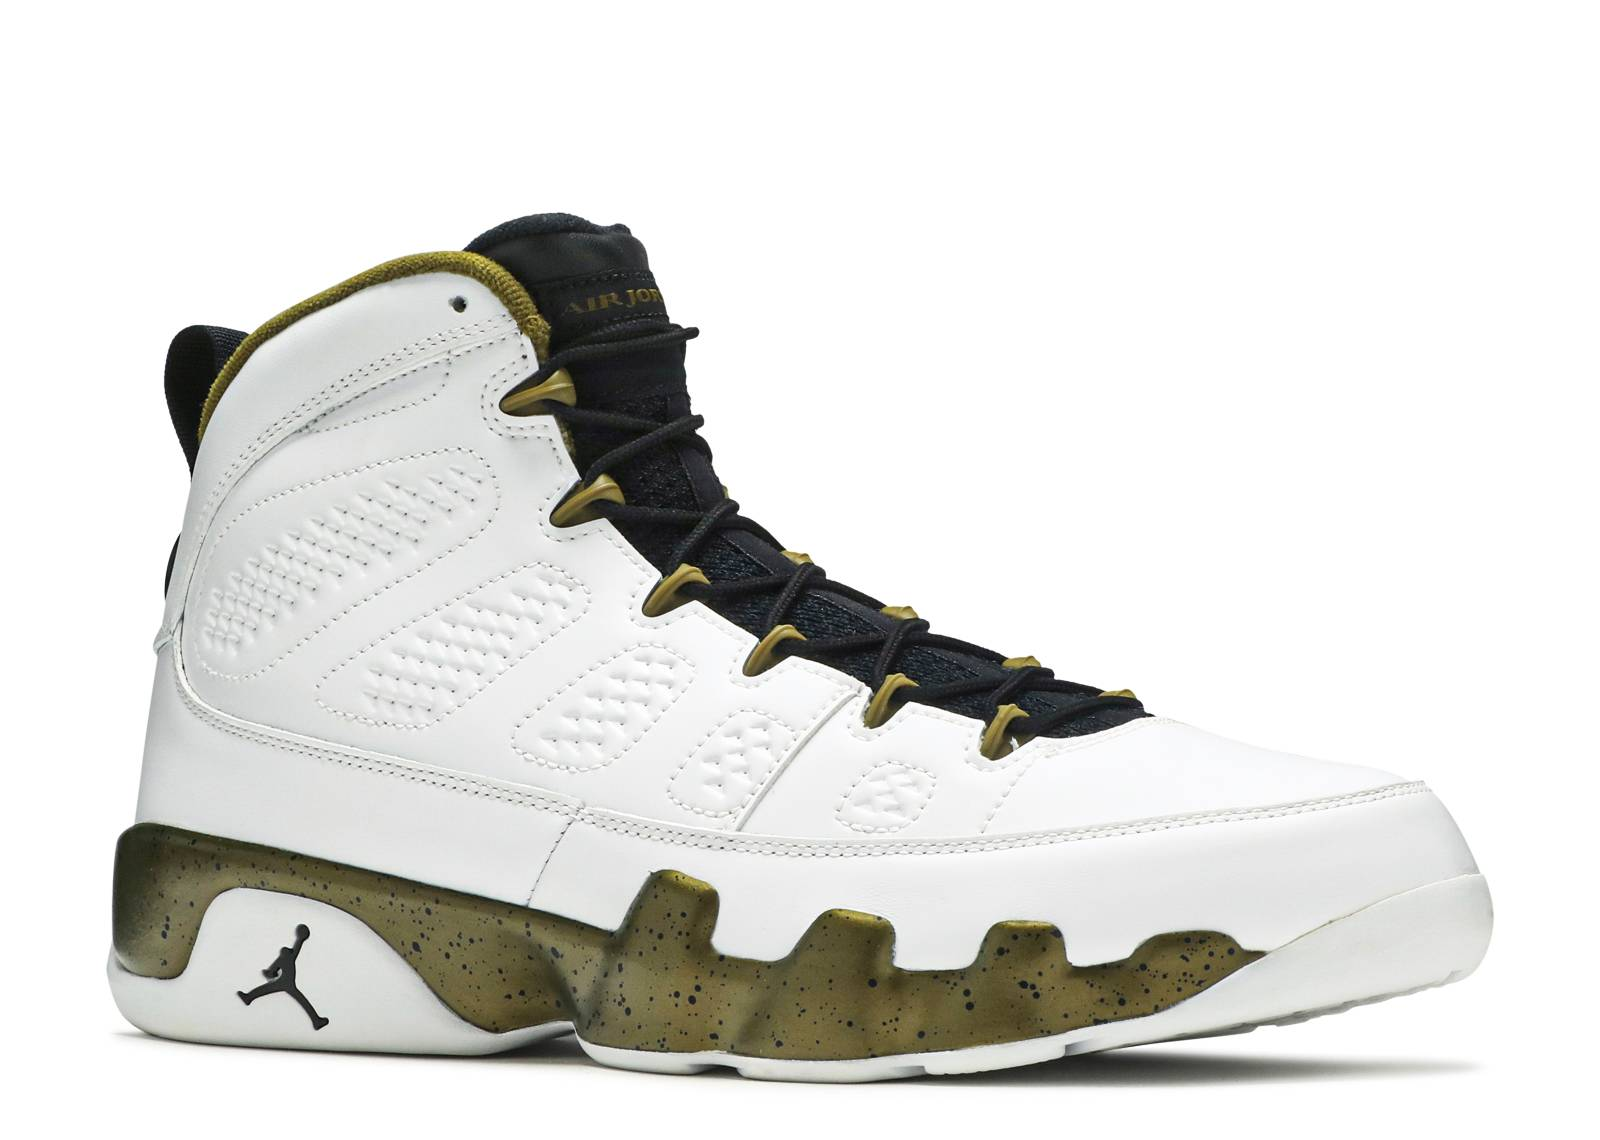 super popular 8c5d7 261de air jordan 9 the statue